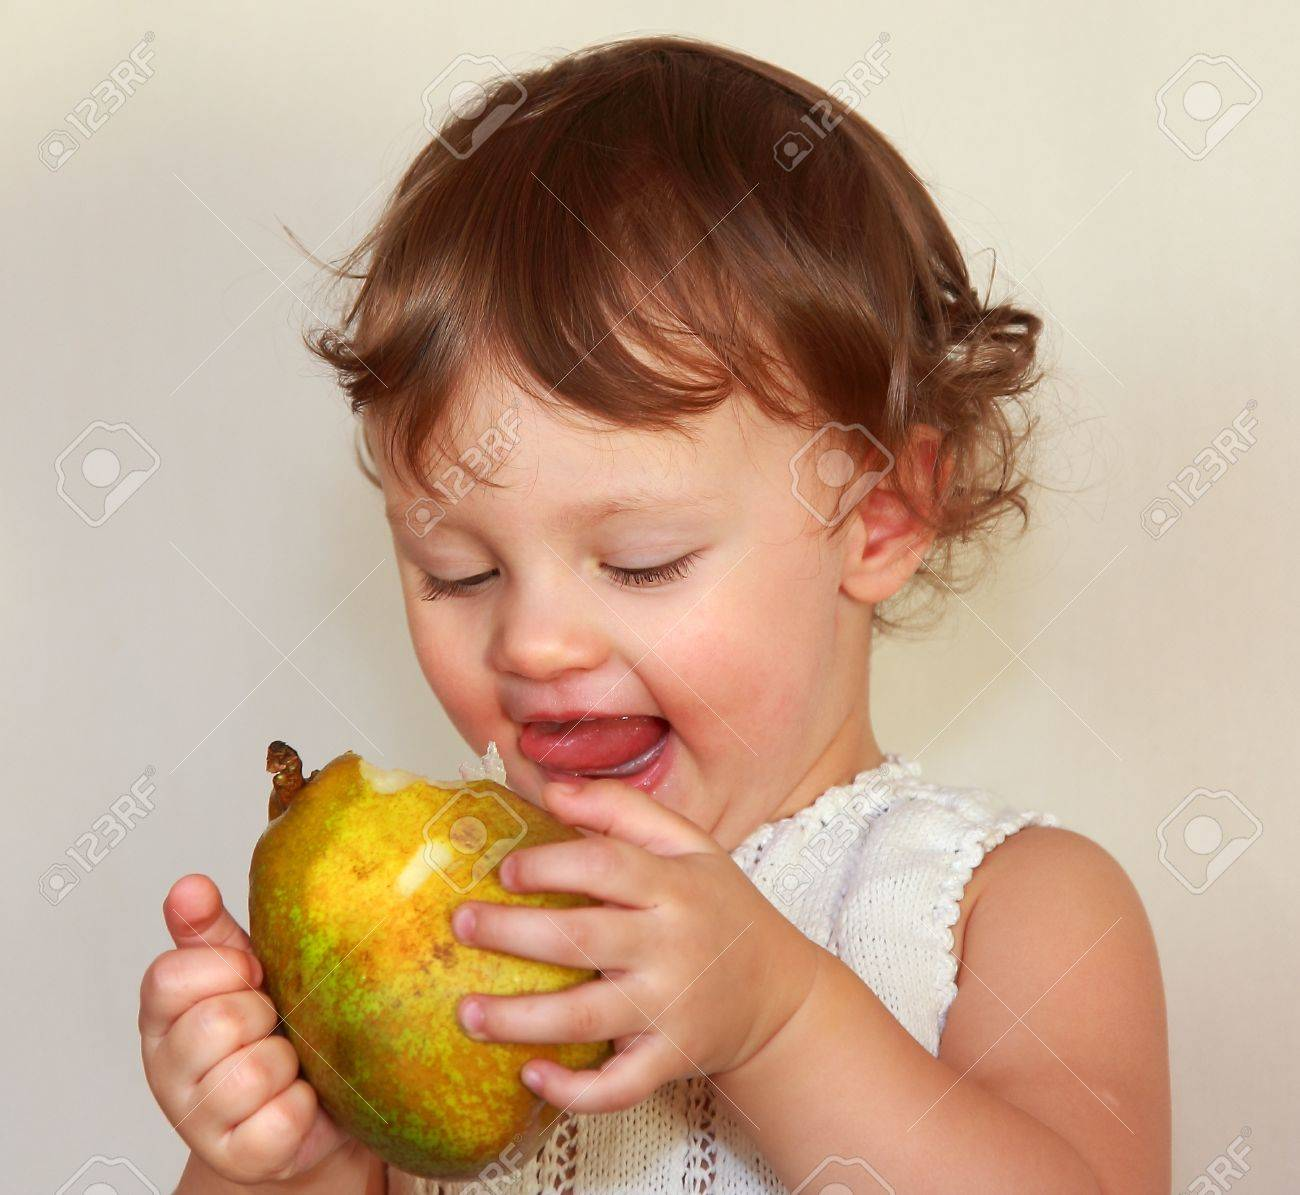 Happy baby eating big pear with joy face  Closeup portrait Stock Photo - 17536889